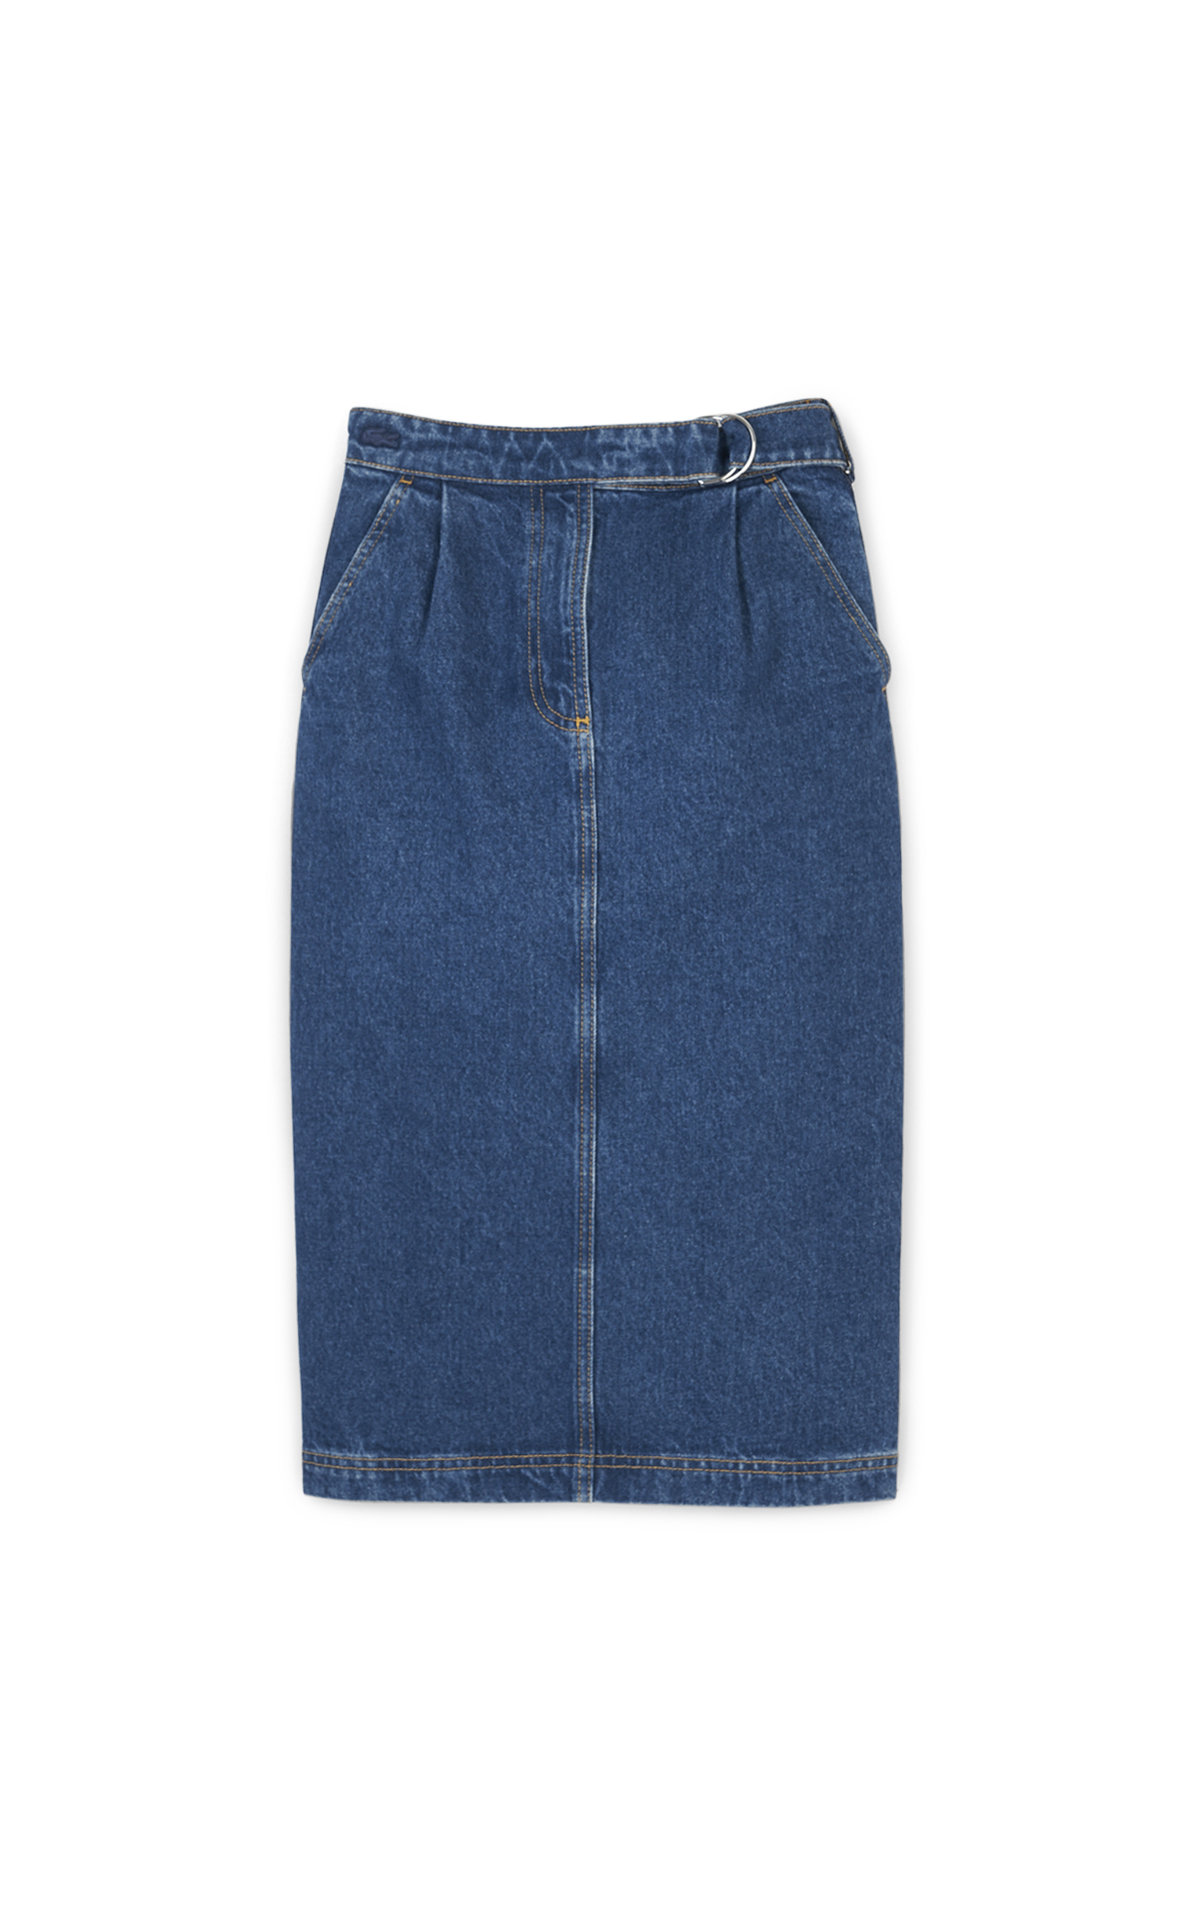 Lacoste Denim midi skirt*